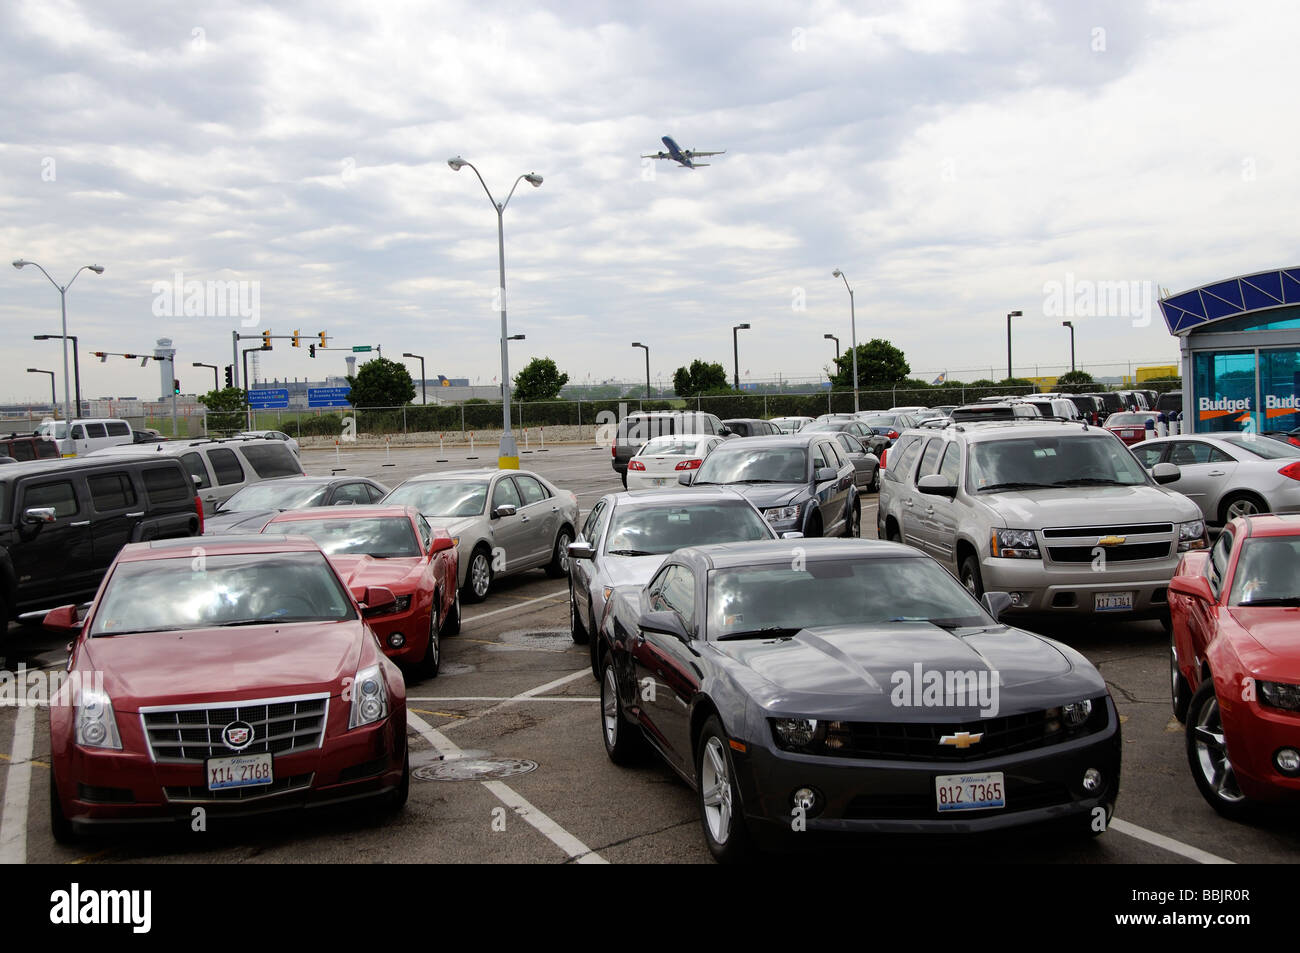 Rental Car Depot At Chicago O Hare International Airport Illinois